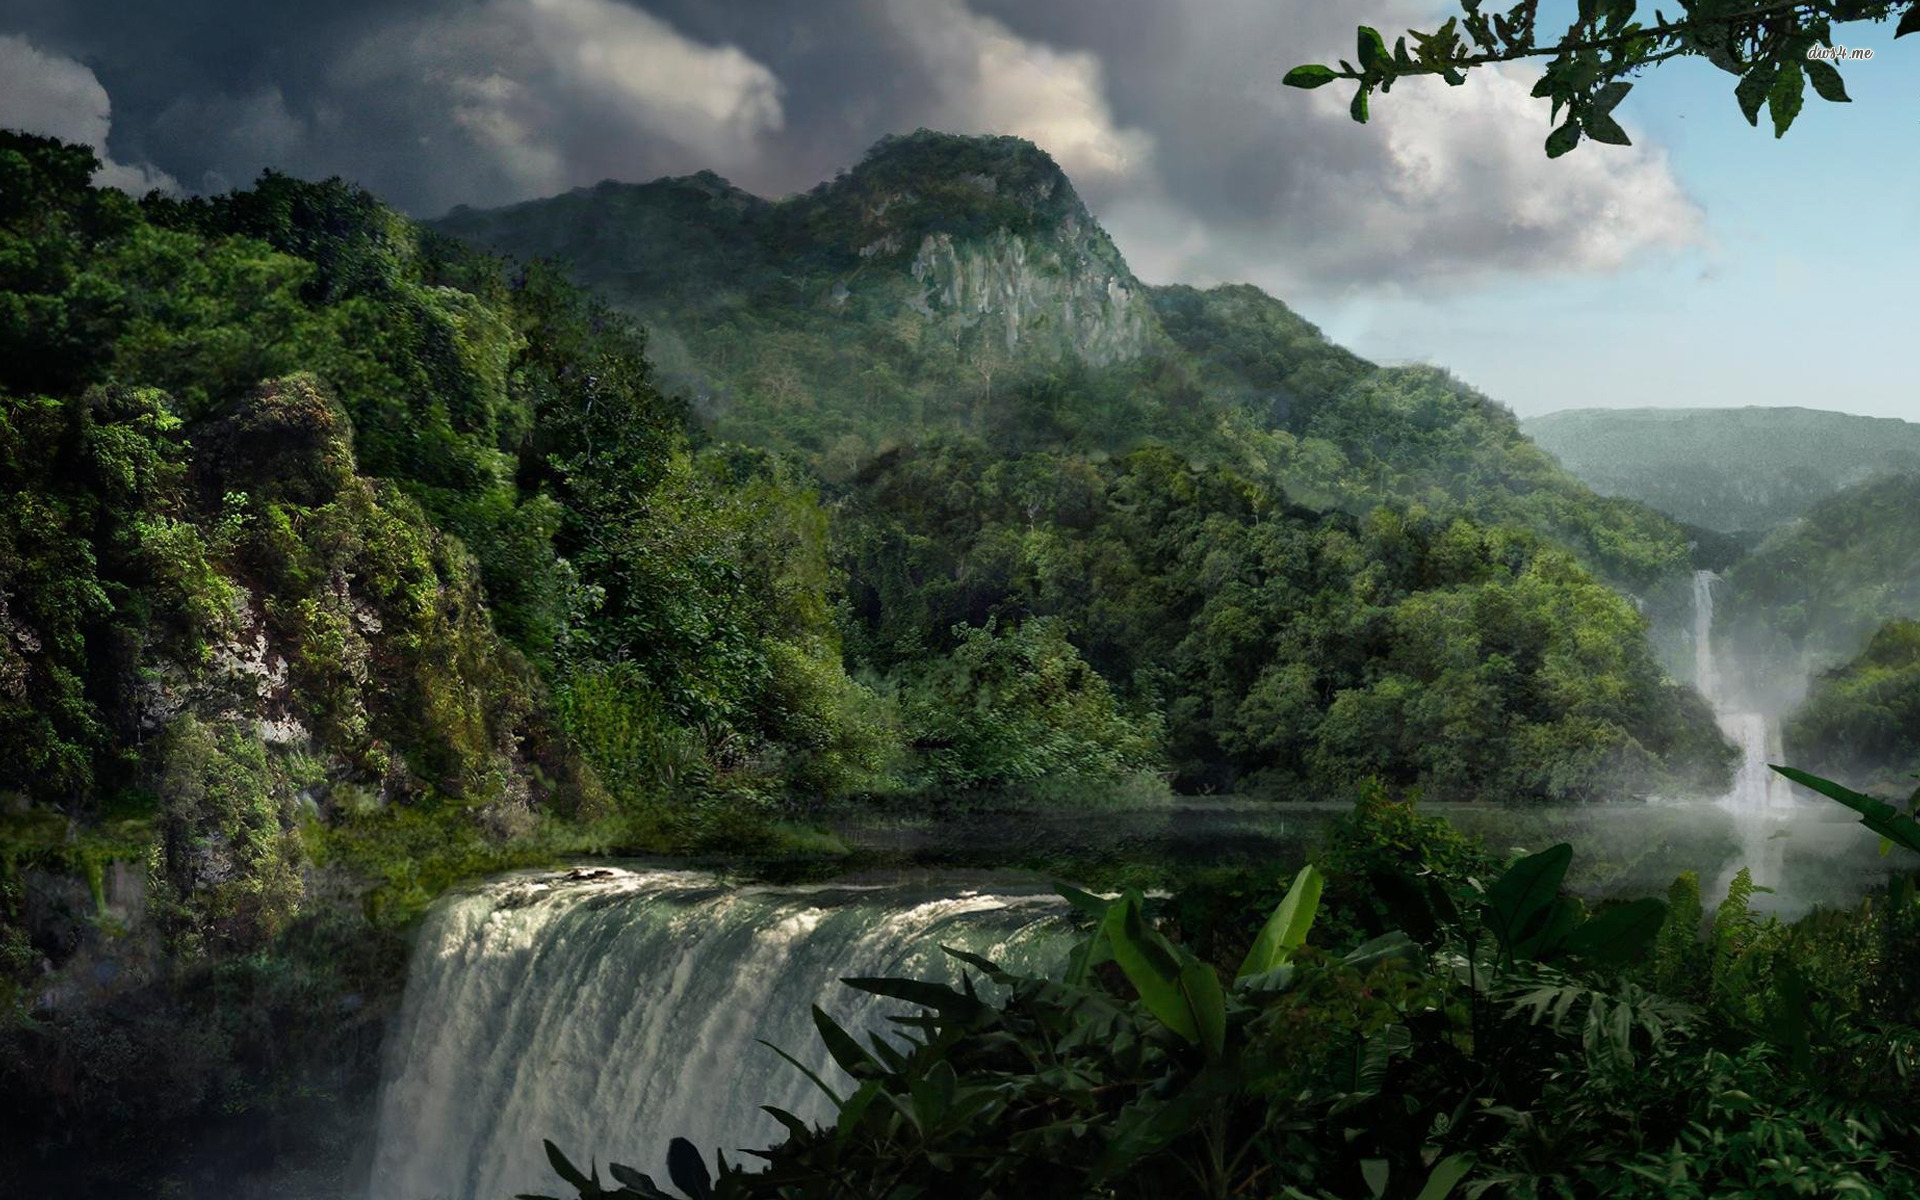 4072-jungle-falls-1920x1200-fantasy-wallpaper.jpg